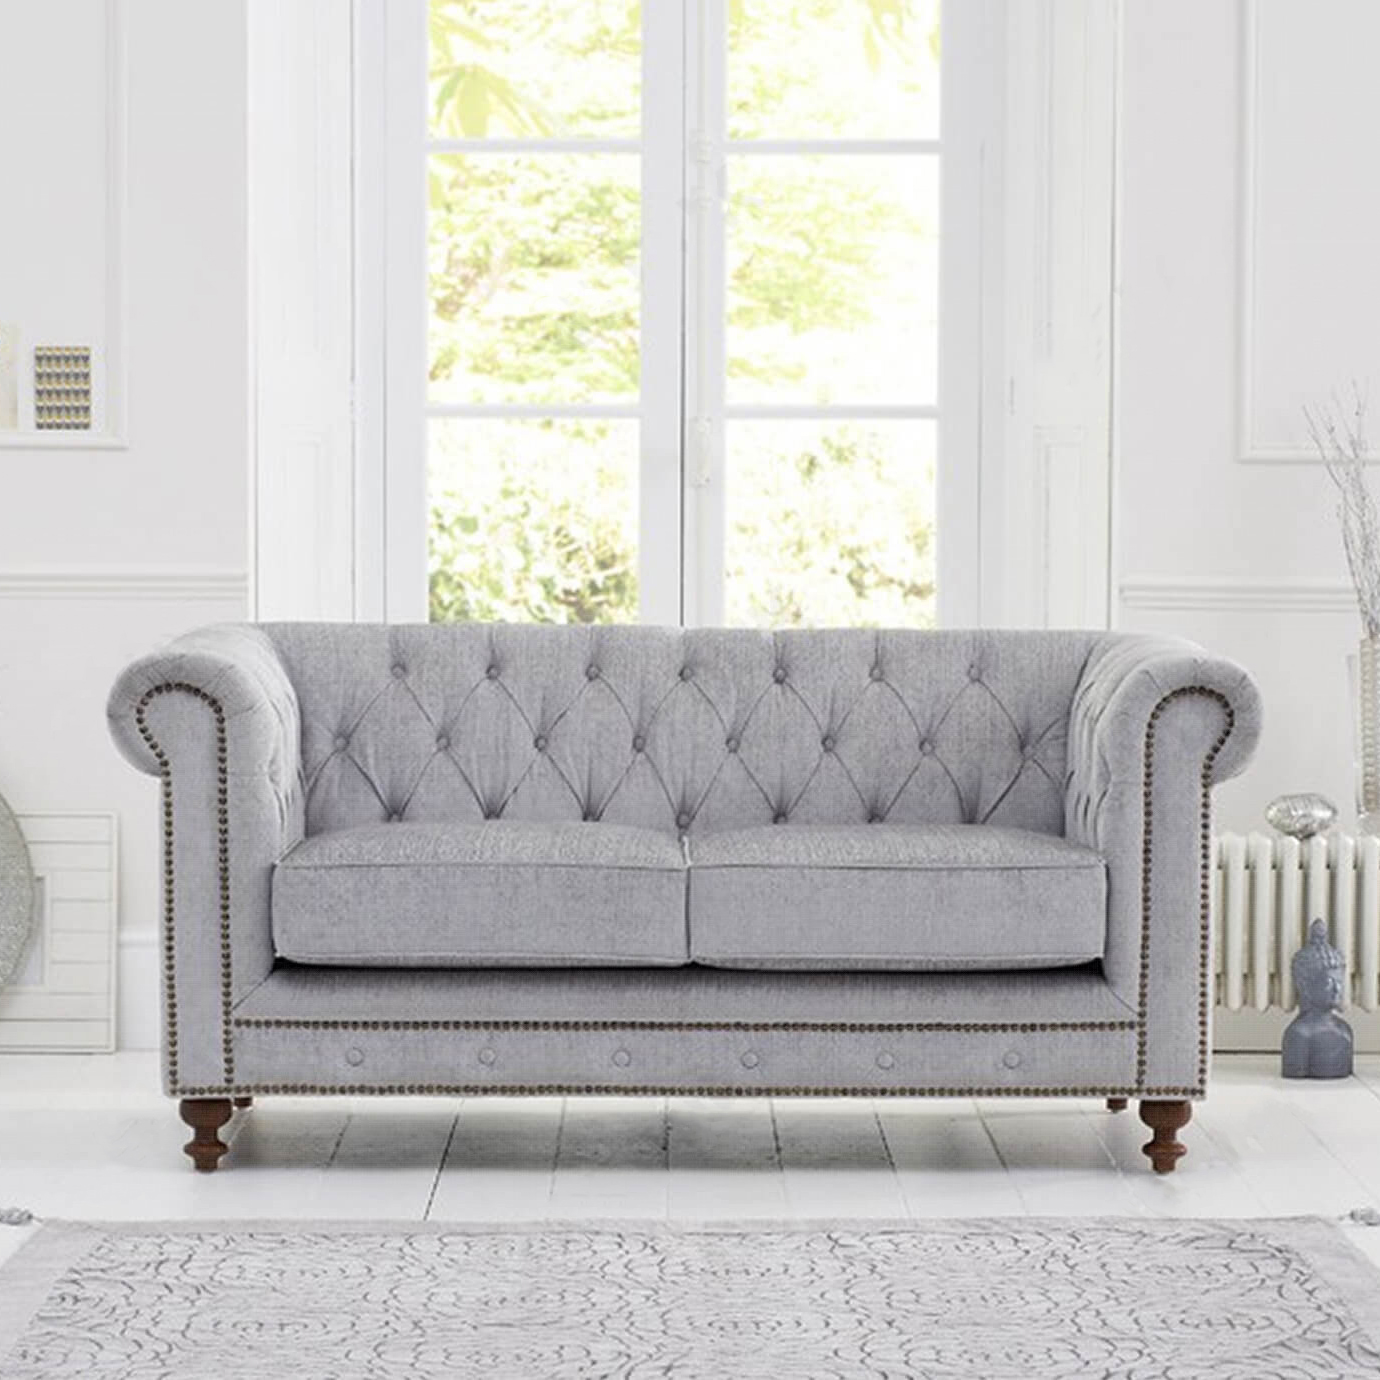 Montrose Grey Fabric 2 Seater Chesterfield Sofa